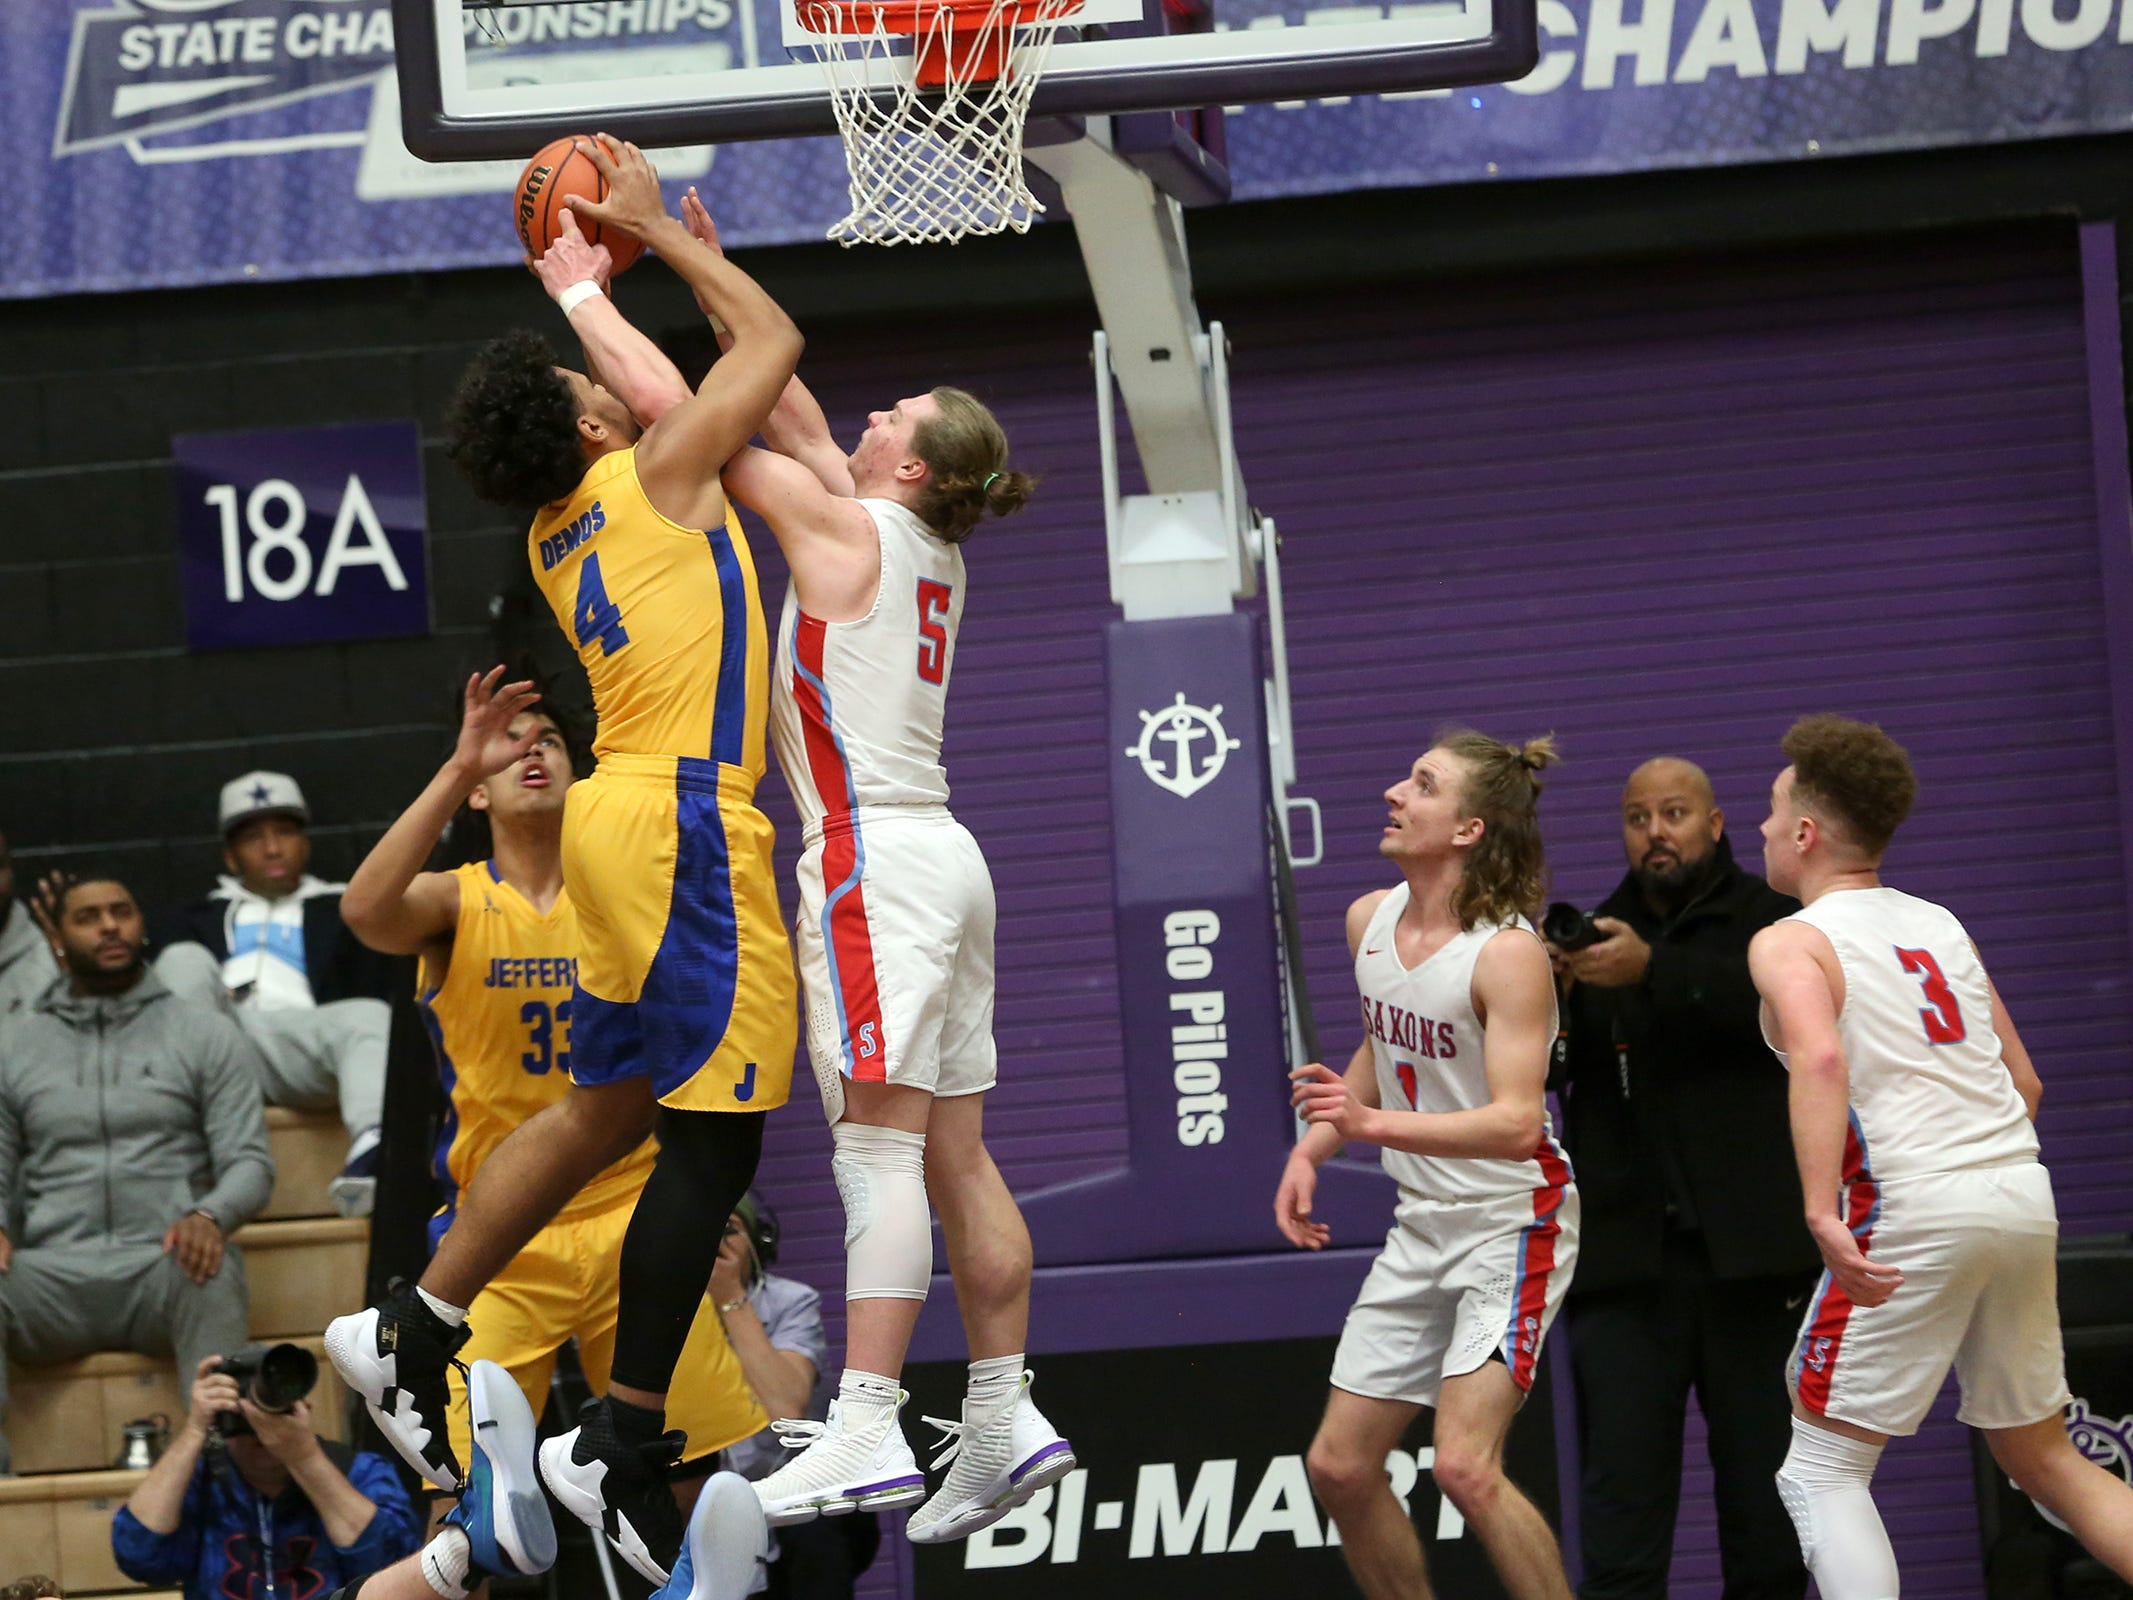 South Salem's Ryan Brown (5) and Jefferson's Nate Rawlins-Kibonge (4) struggle for the ball during the South Salem vs. Jefferson boys basketball OSAA 6A semifinal game at Chiles Center in Portland on Friday, March 8, 2019.